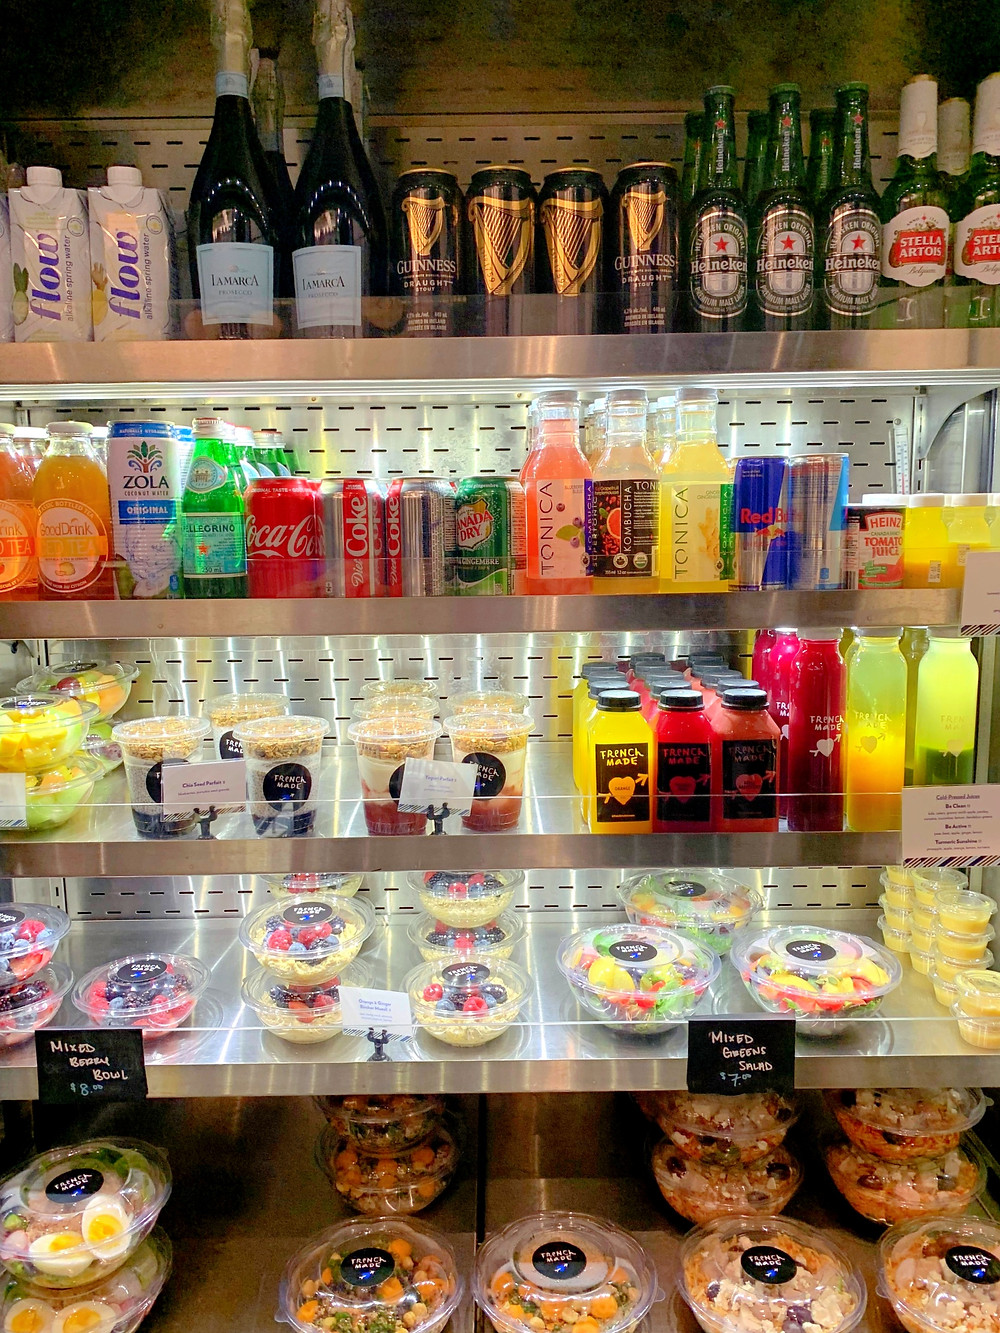 French Made Cafe Toronto alcohol fruit bowls fresh juices salads and more on menu